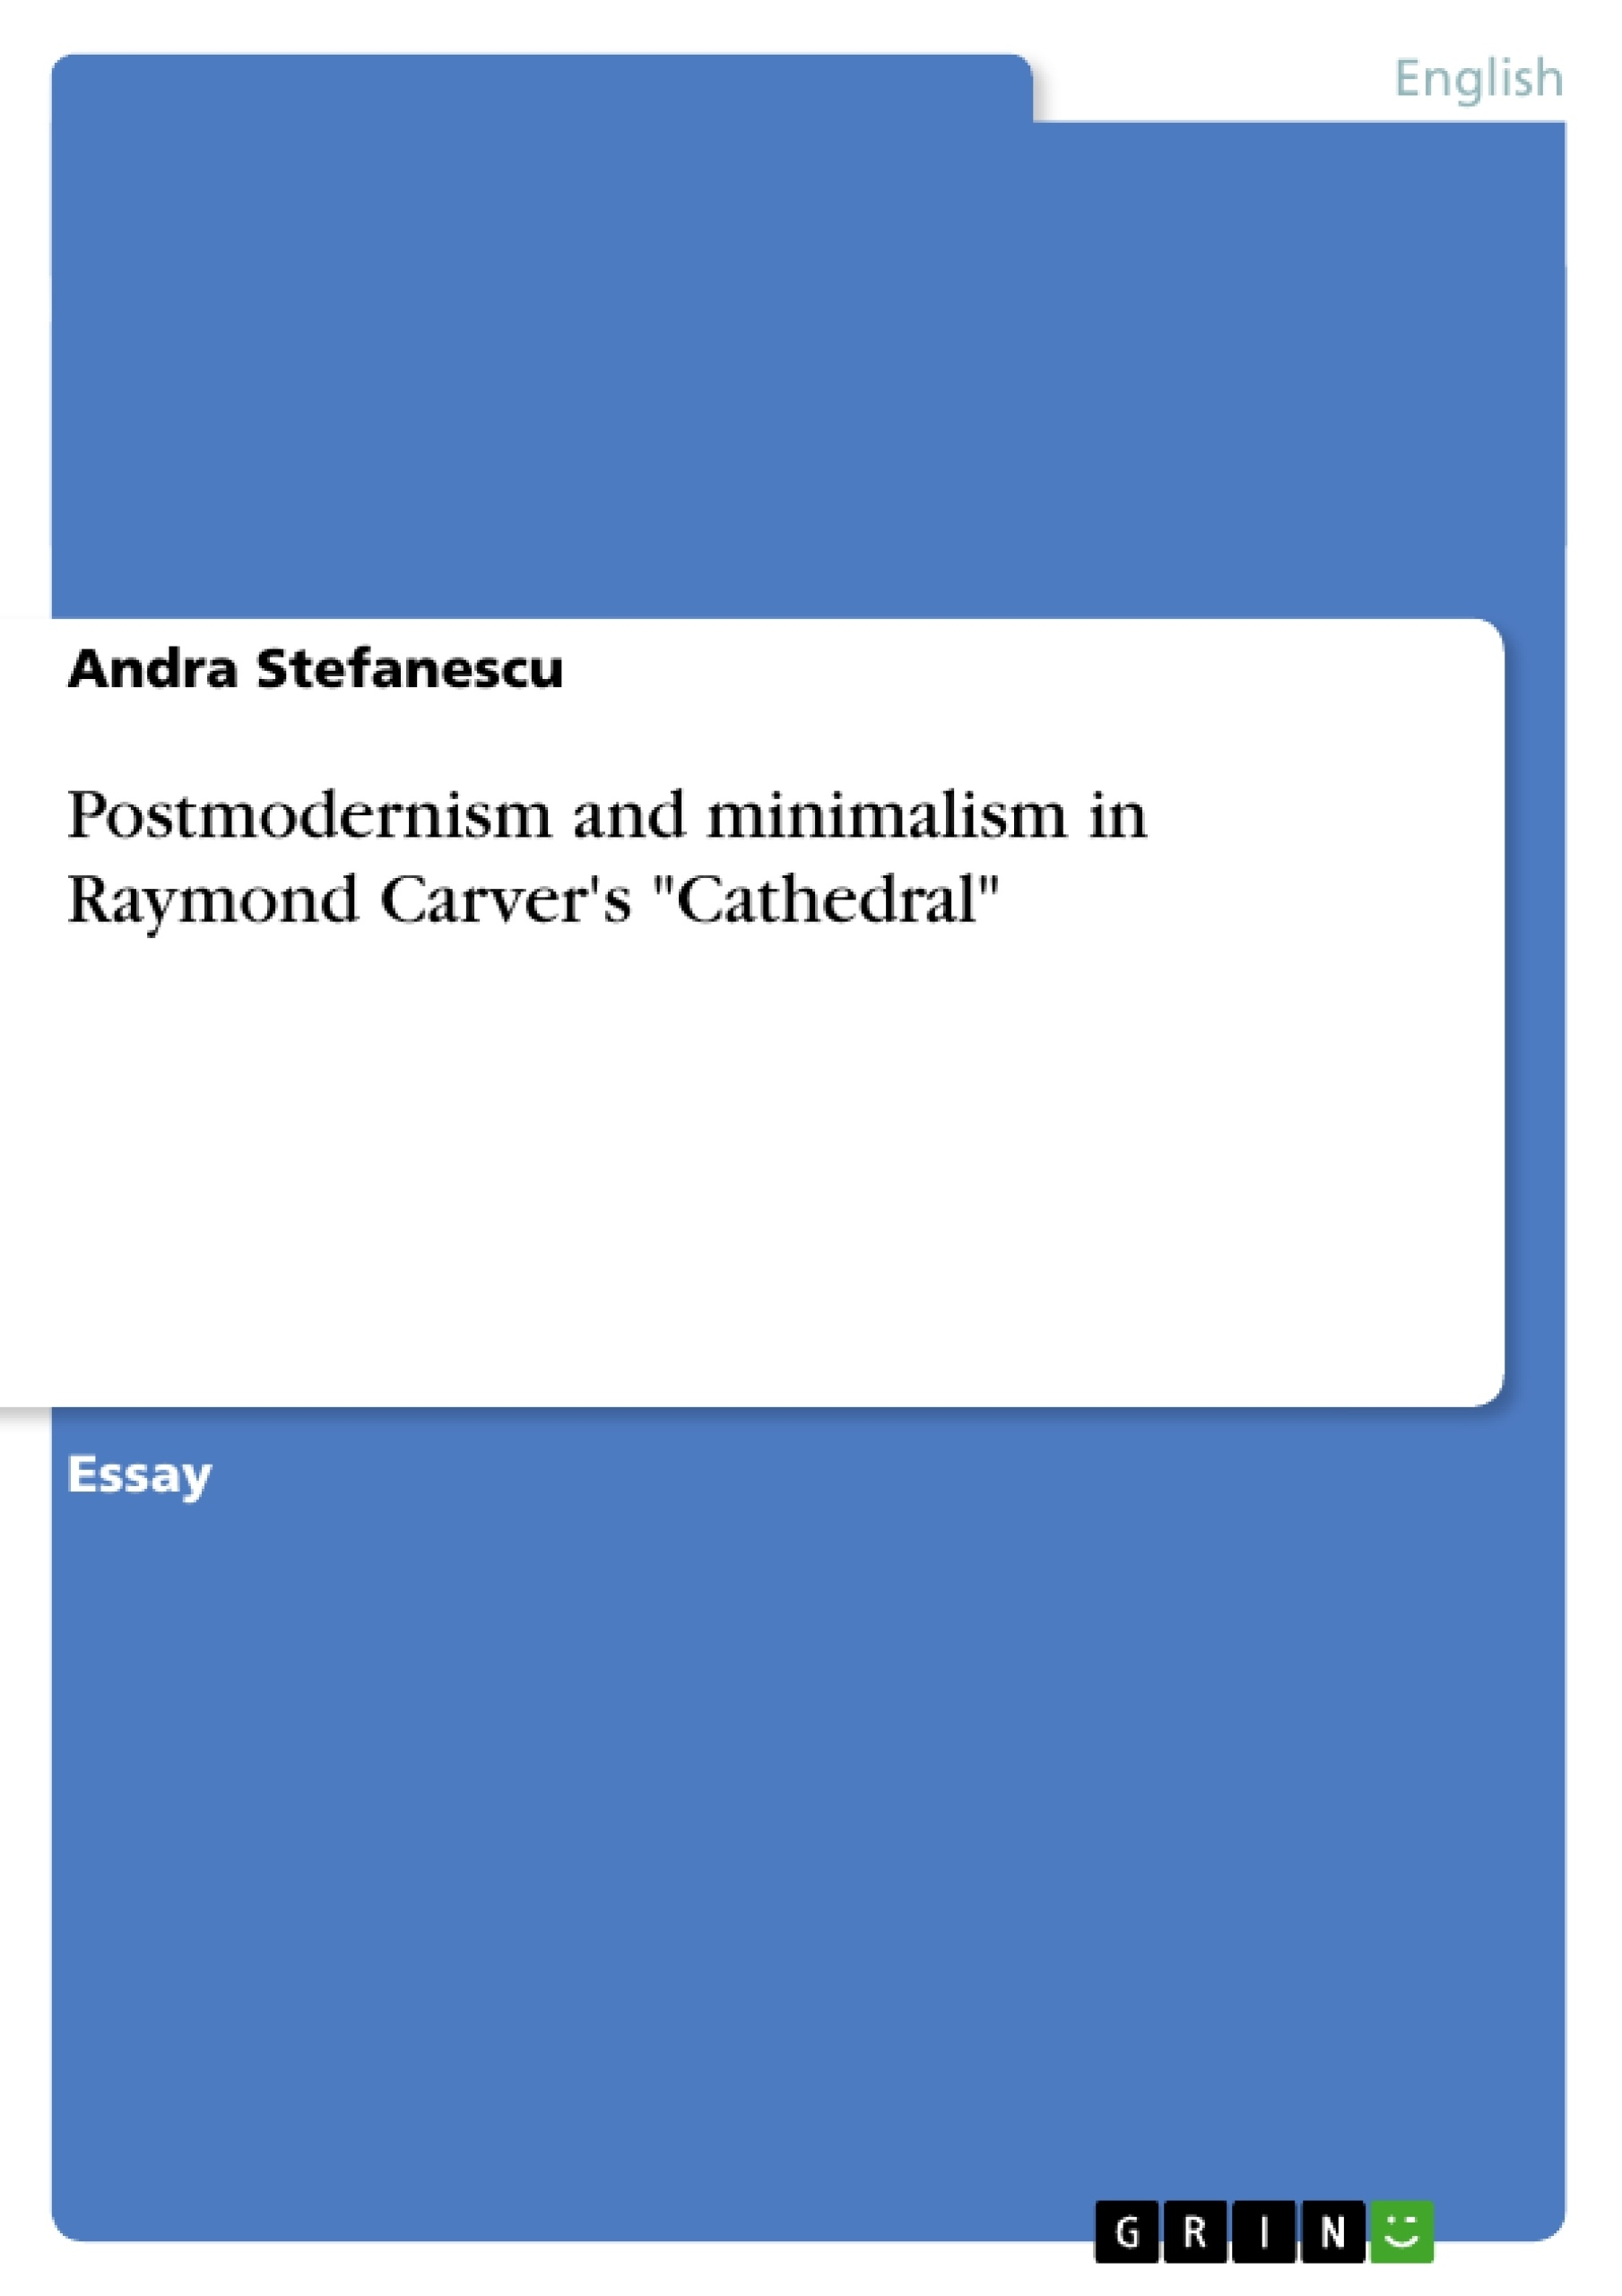 postmodernism and mini sm in raymond carver s cathedral upload your own papers earn money and win an iphone 7